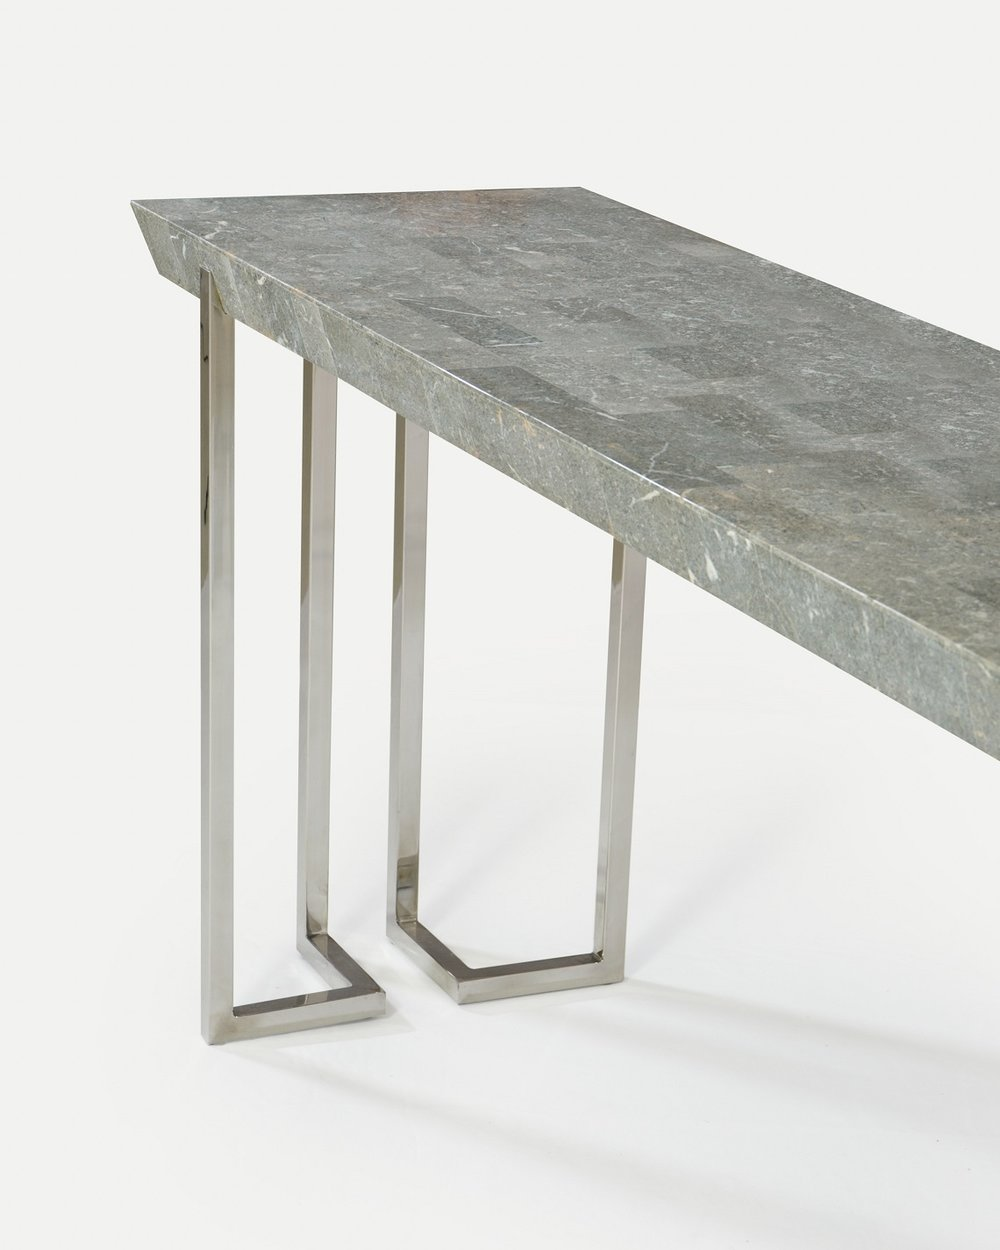 Co-Creative Studio, Detalia Aurora, Ercole Tables, Gray Stone Lamination, Stainless Steel C.jpg